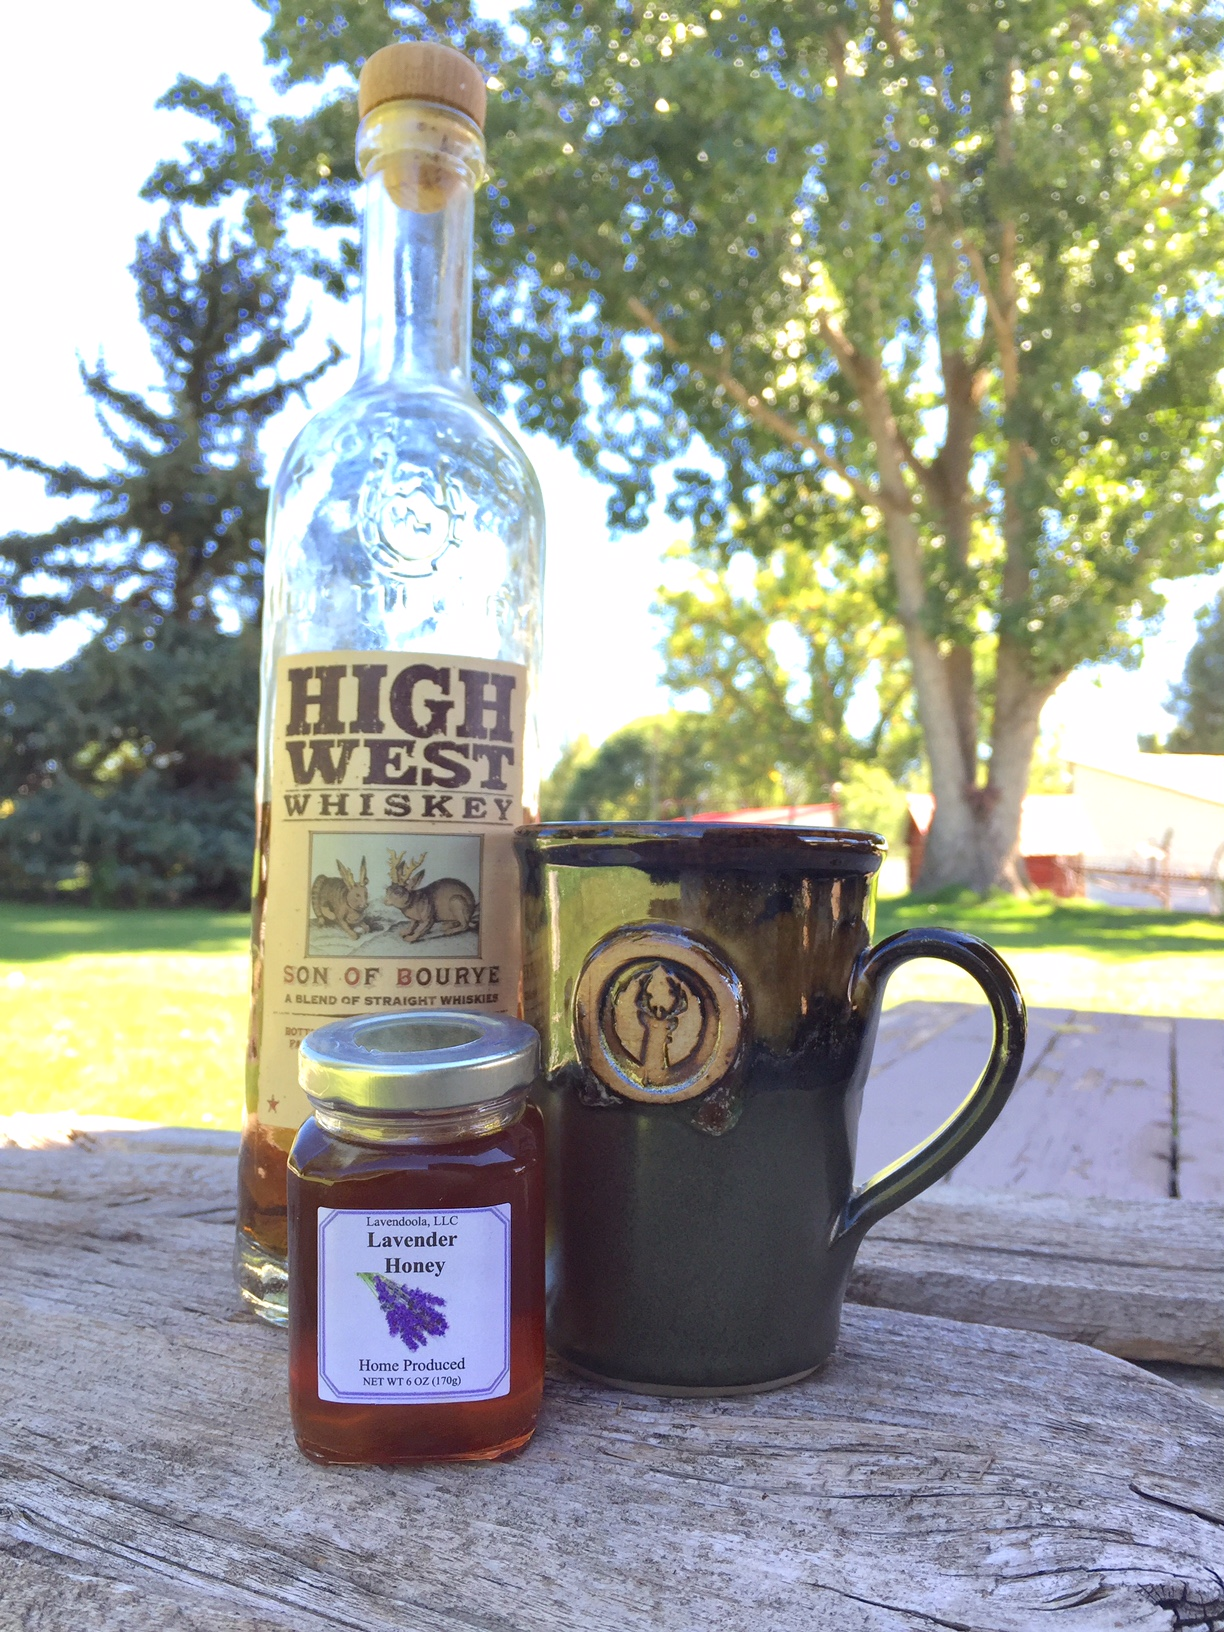 high-west-hot-toddy-lavender-honey-autumn-activities